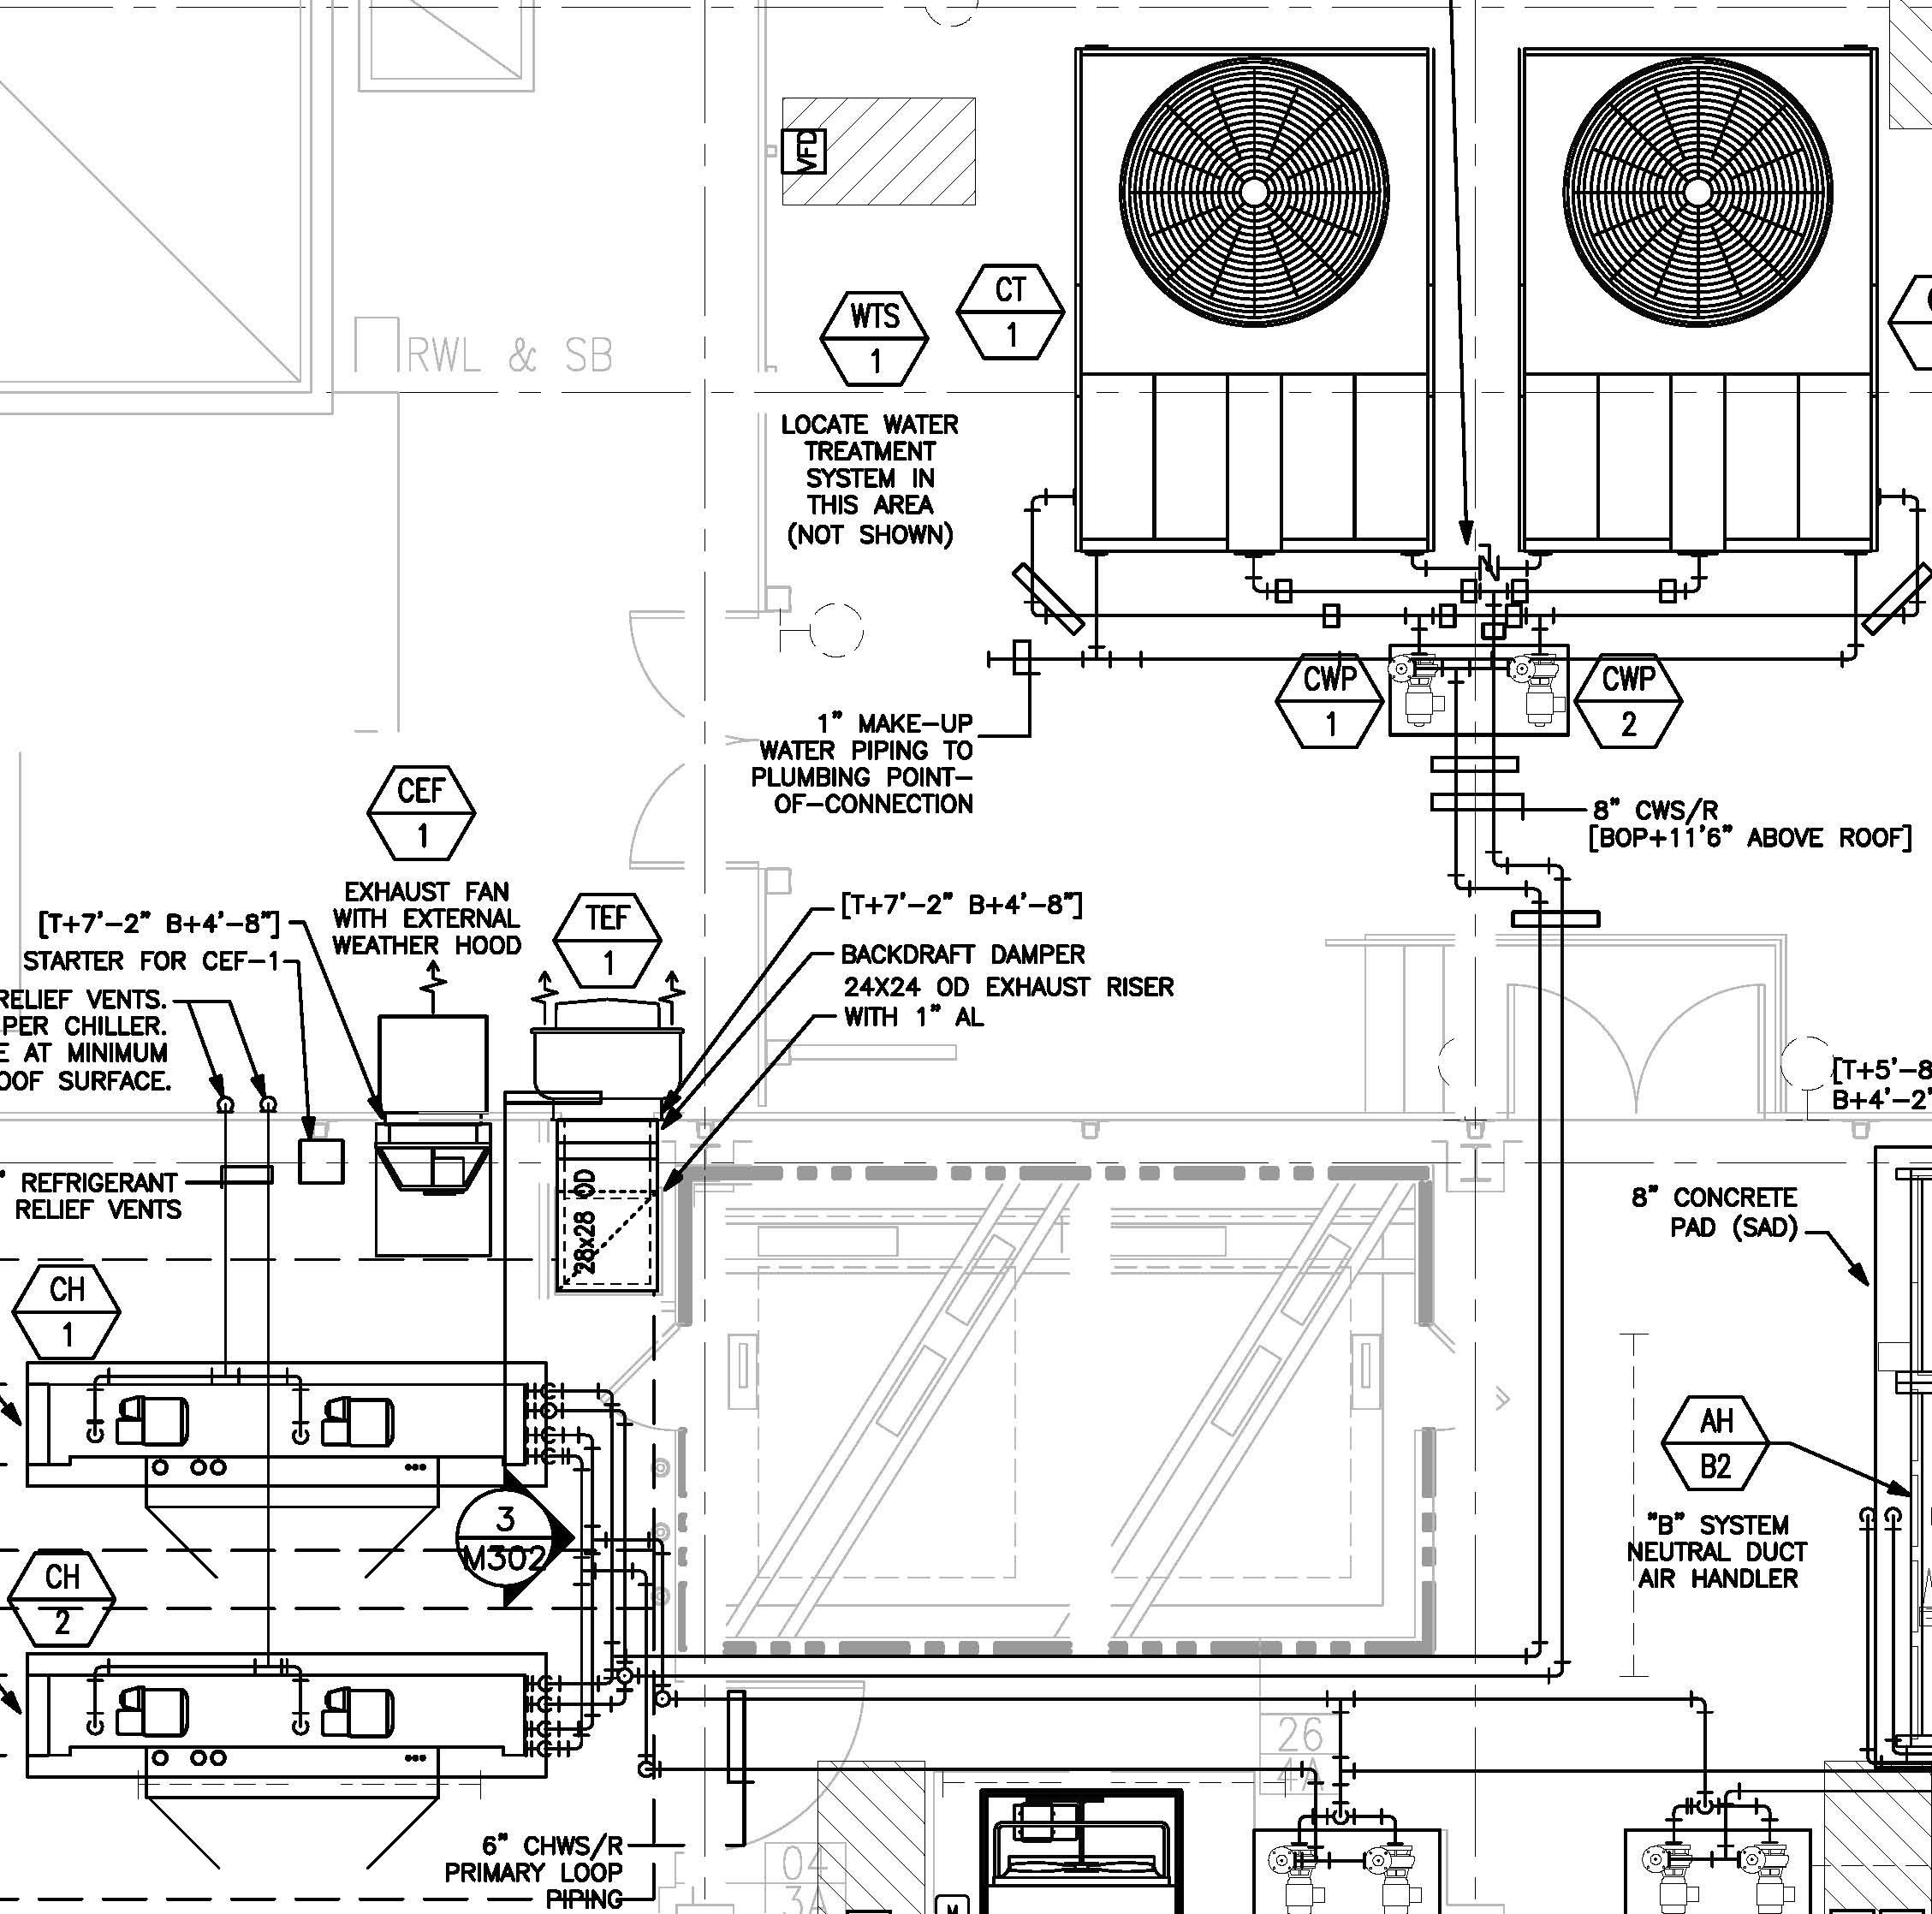 rheem rhllhm3617ja wiring diagram unlabeled muscles blank rhll auto electrical diagrami need a complete for ruud air handler model hm3821ja